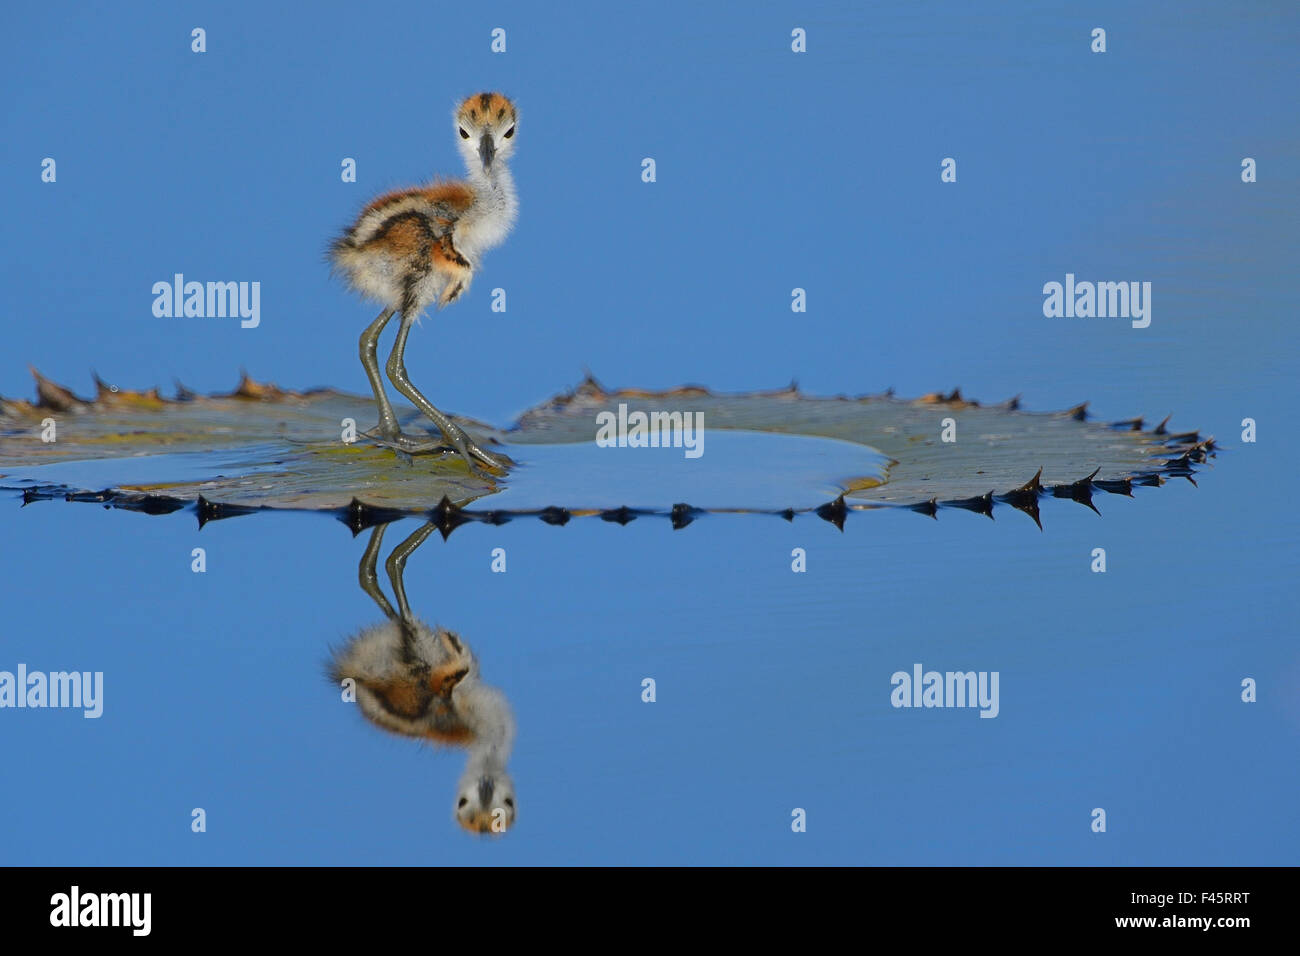 African jacana (Actophilornis africana) chick, one day, standing on leaf, Chobe River, Botswana, April. - Stock Image